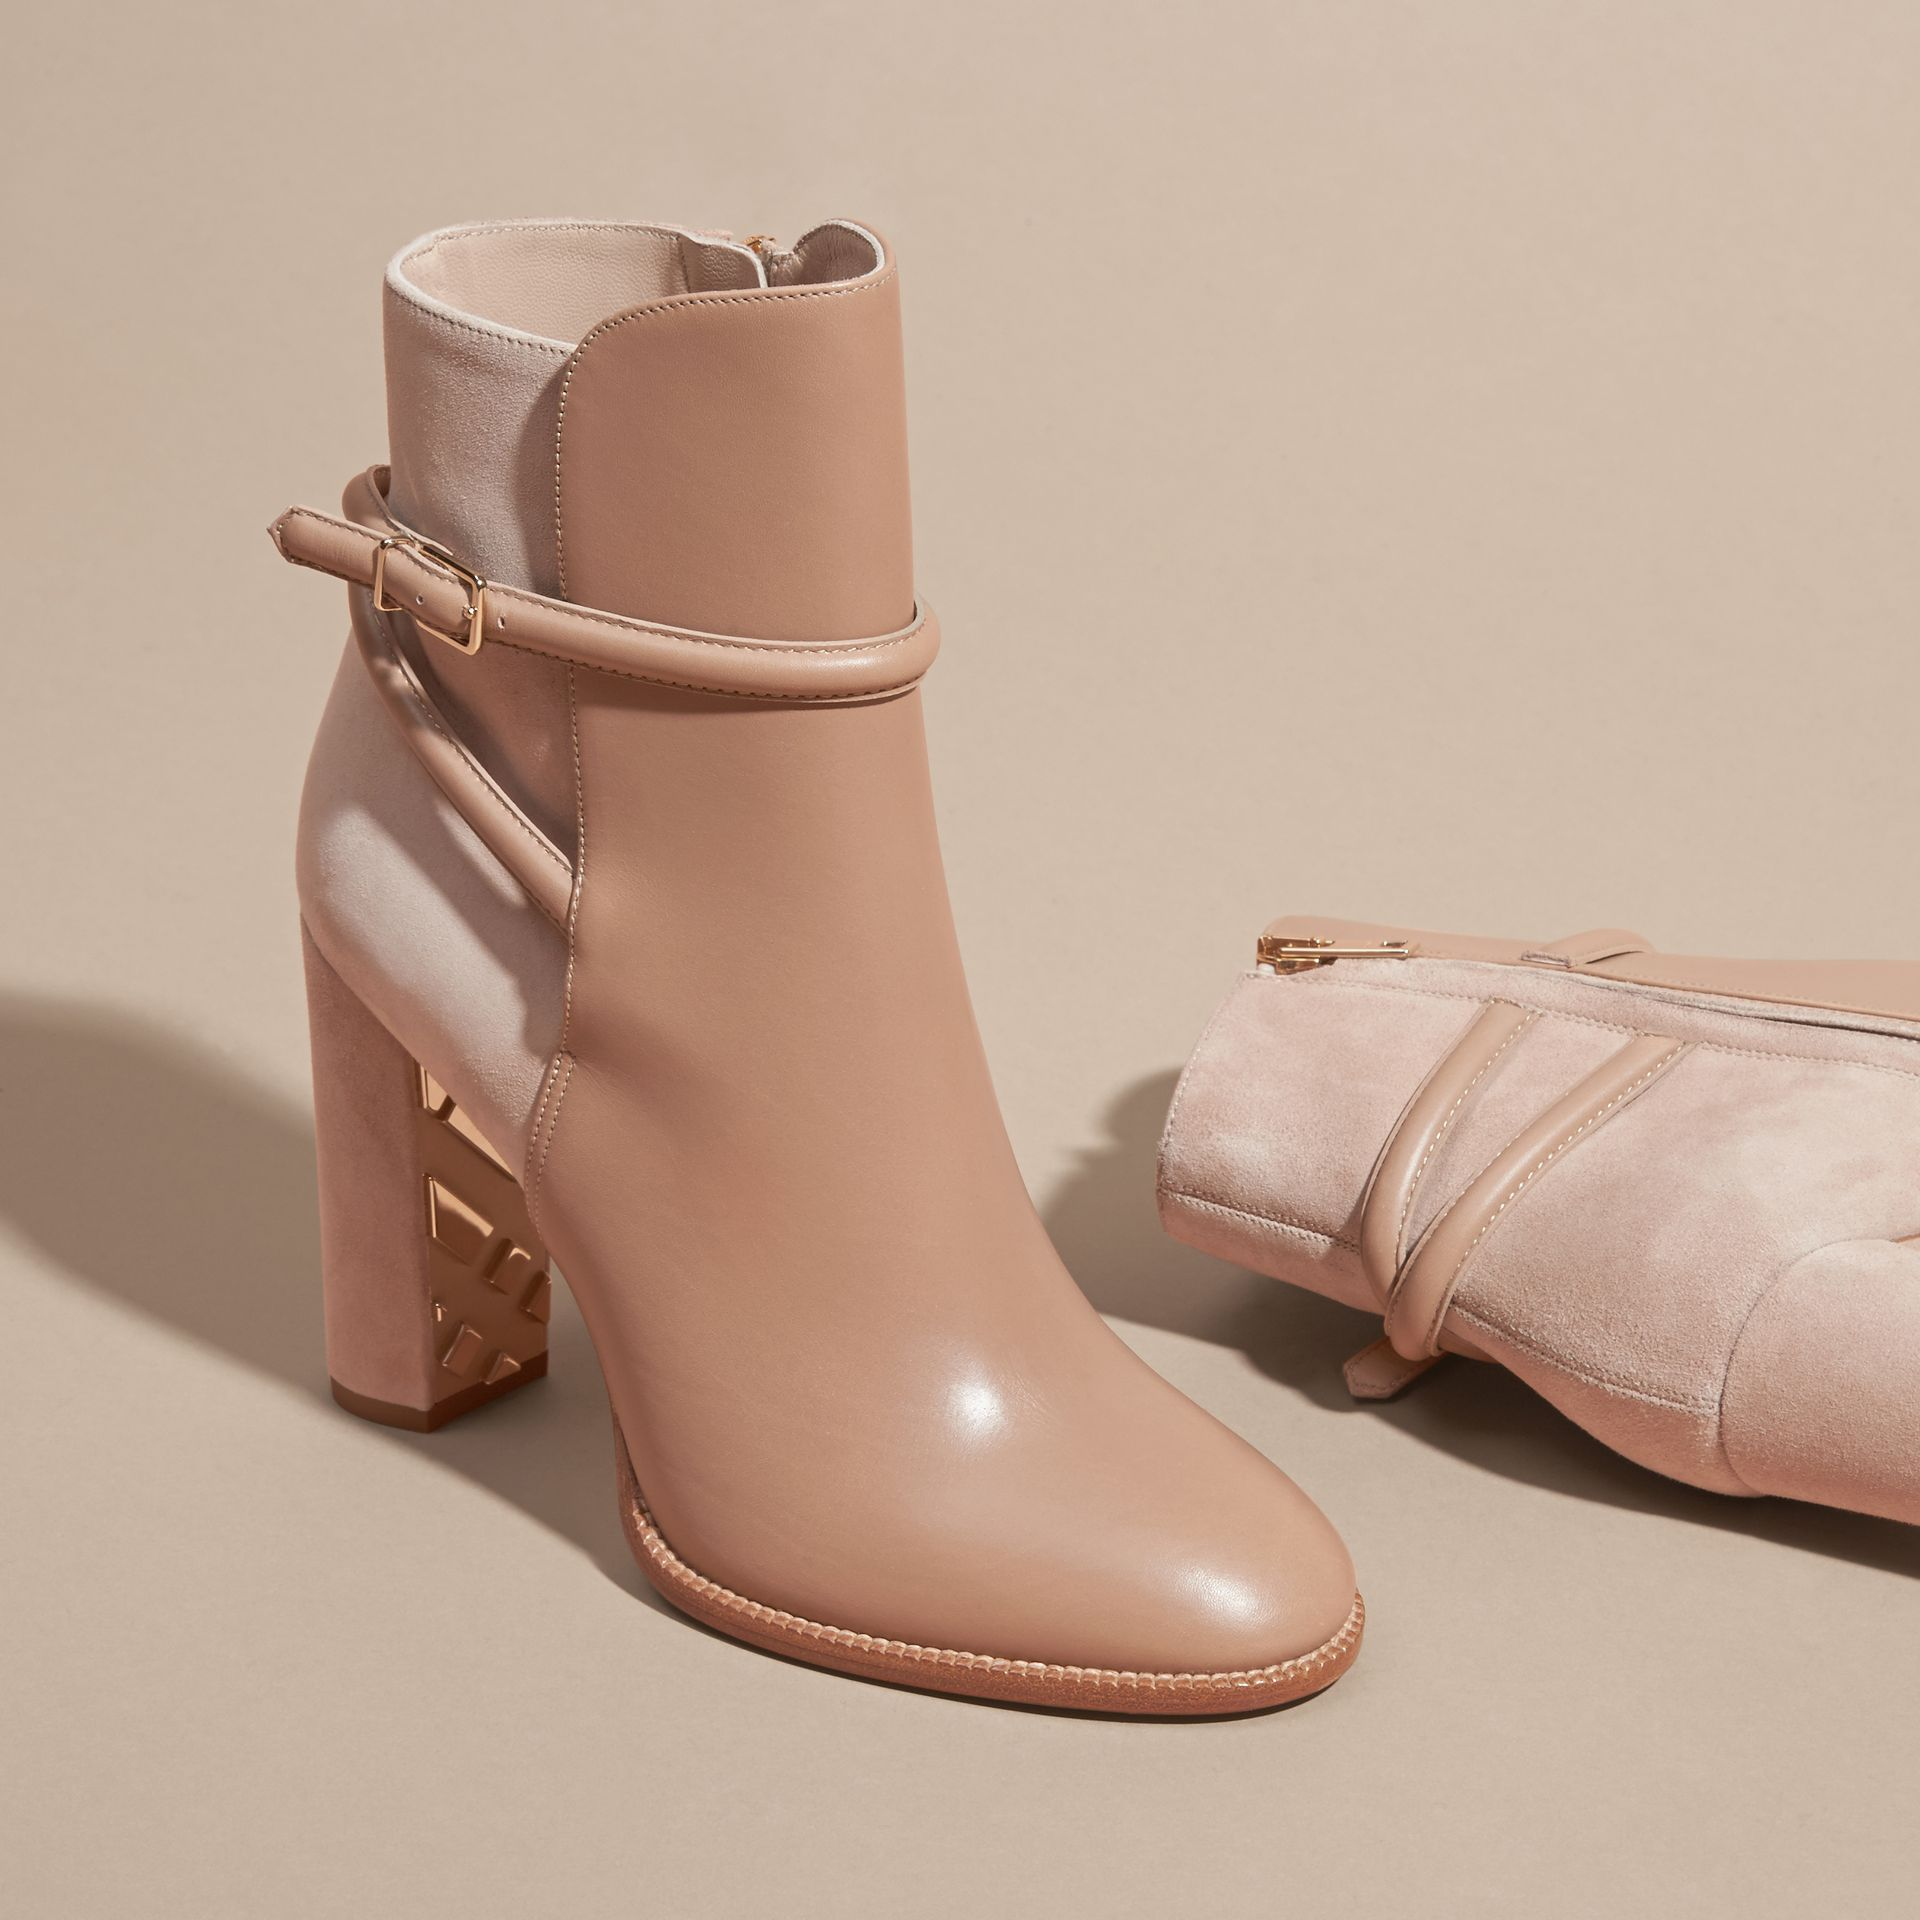 Light nude Strap Detail Leather and Suede Ankle Boots Light Nude - gallery image 3